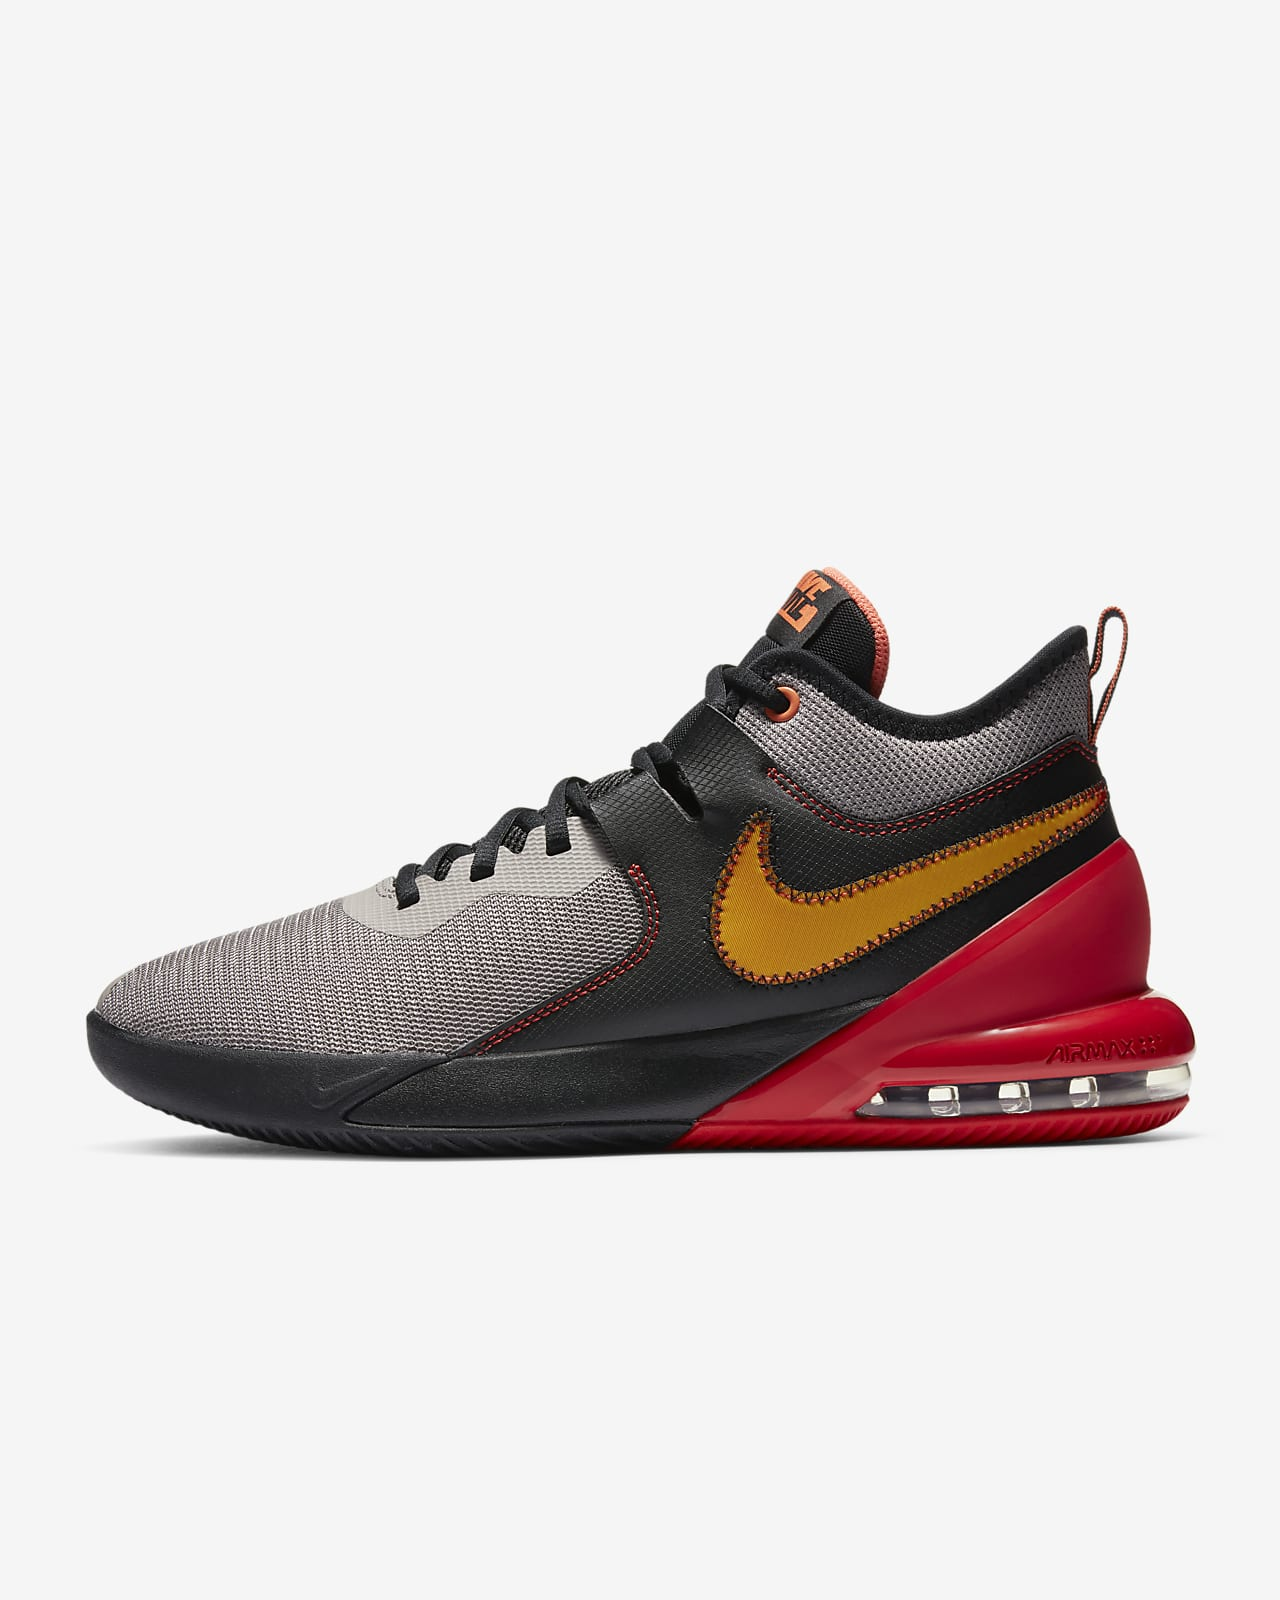 Chaussure de basketball Nike Air Max Impact